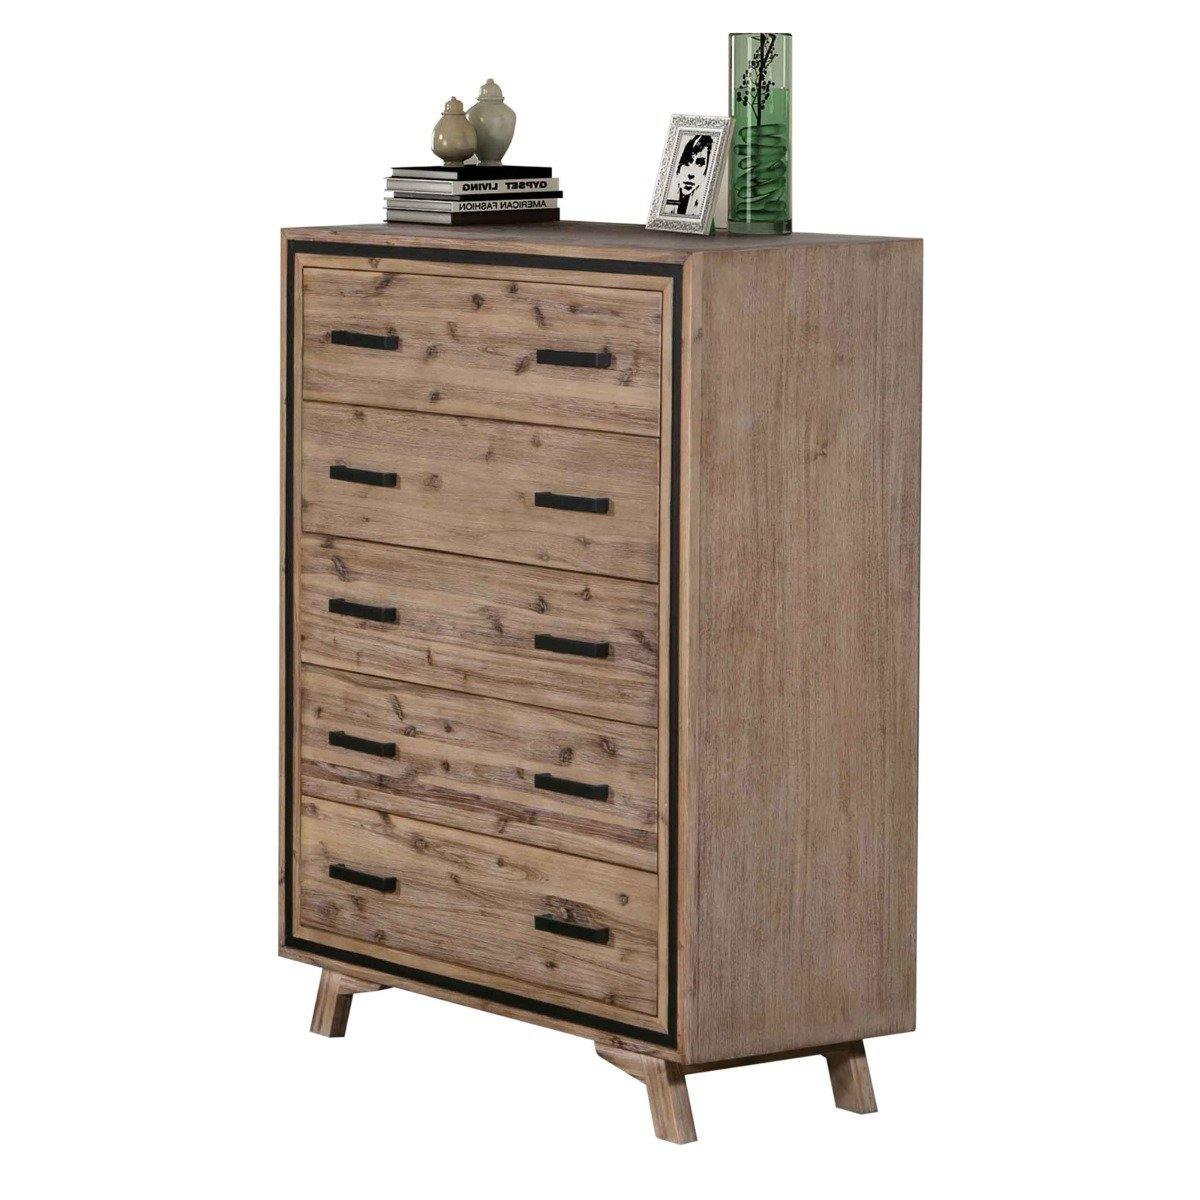 Seashore 2/3 Drawer Tallboy